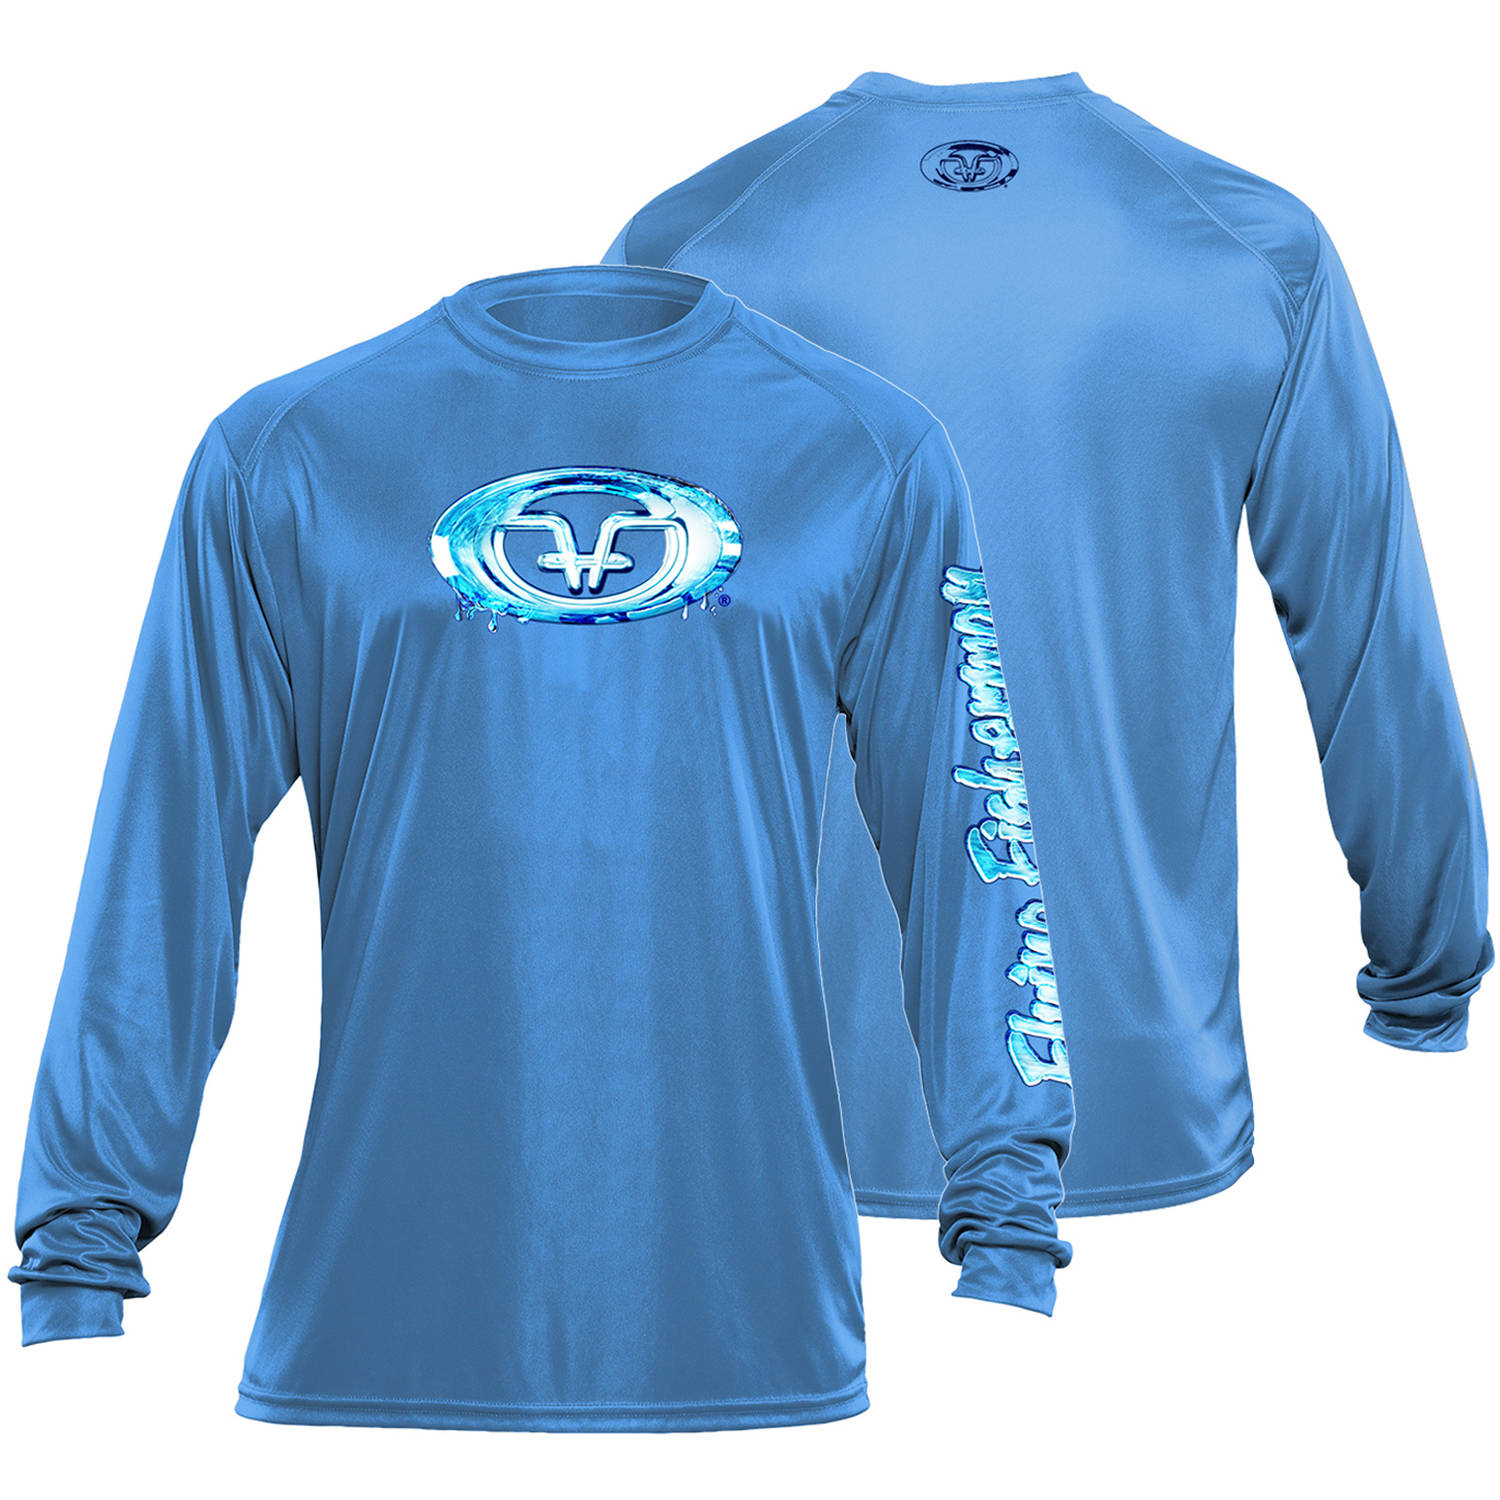 Flying Fisherman Water Logo Performance Tee, Carolina Blue, M by Flying Fisherman